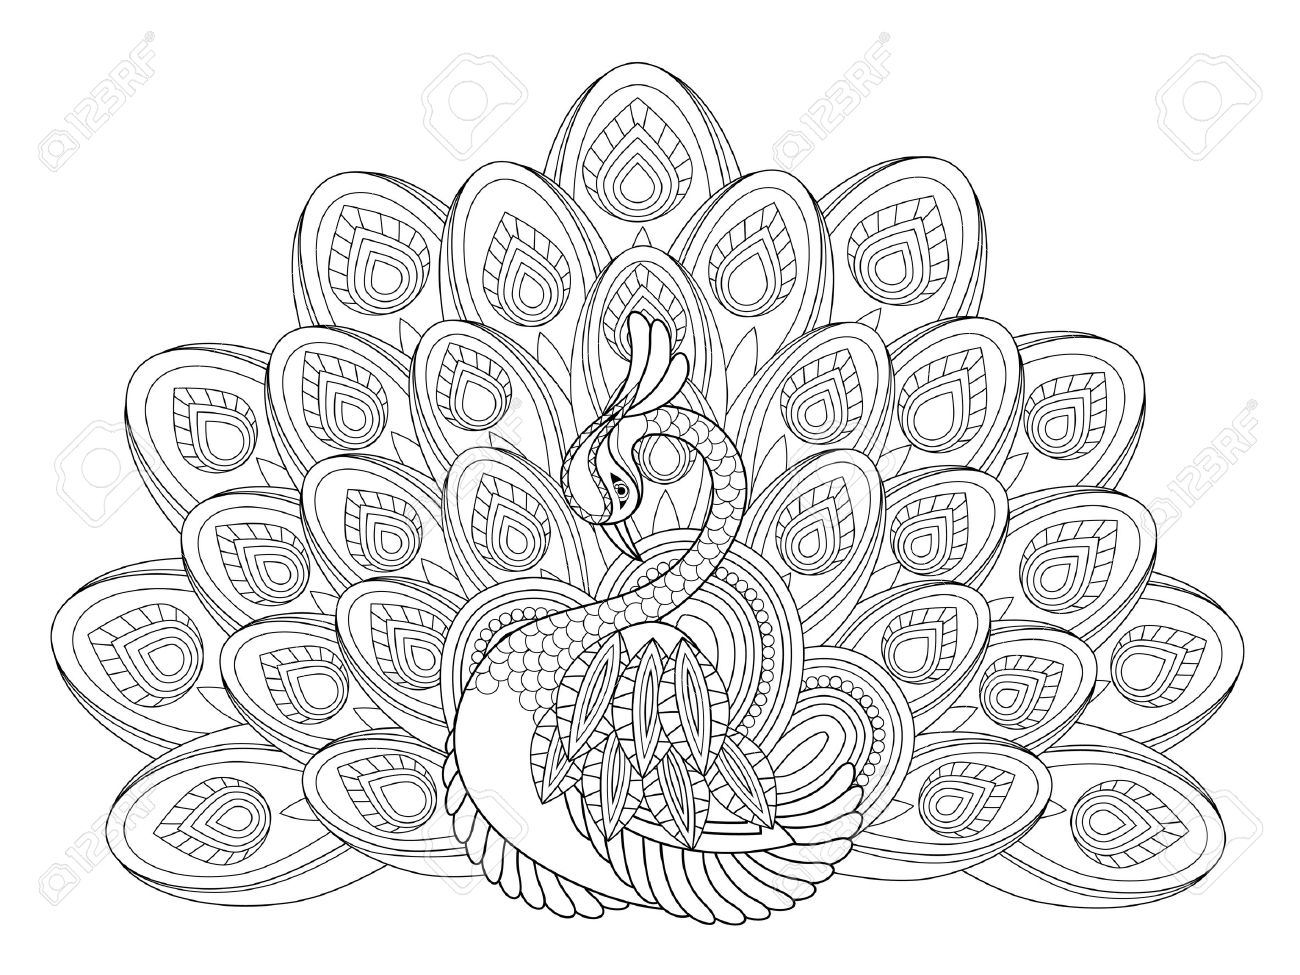 peacock coloring pages for adults 100 images peacock coloring